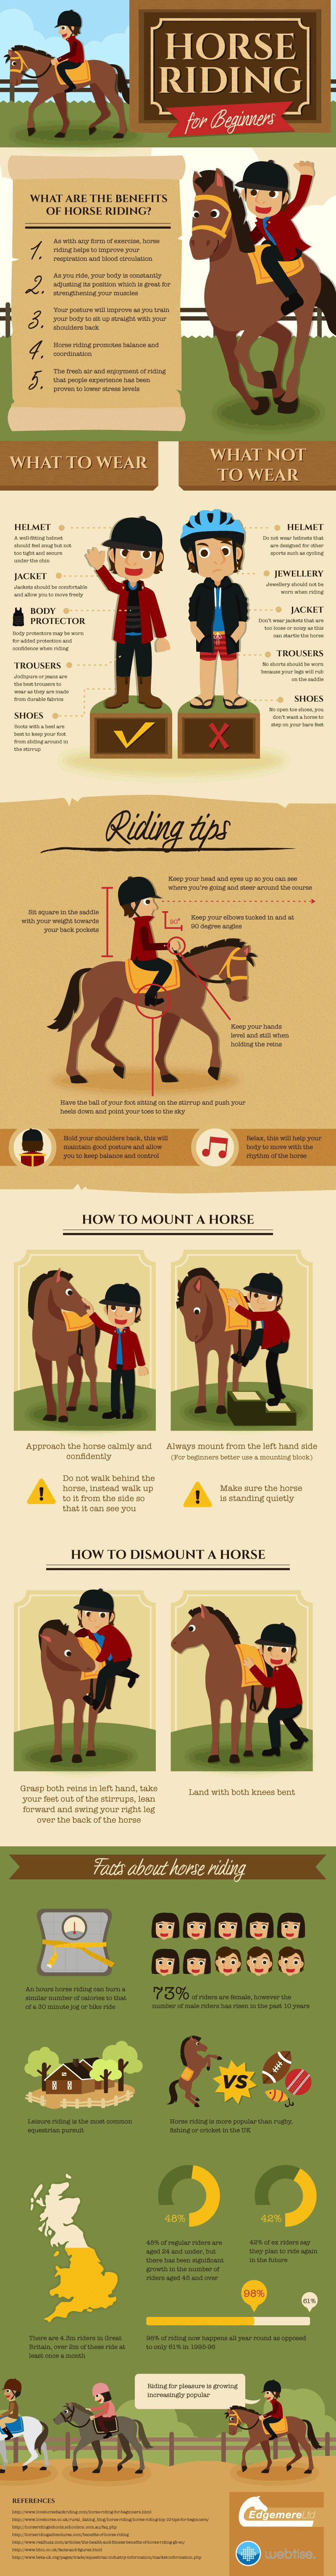 Edgemere Horse Riding For Beginners [infographic]